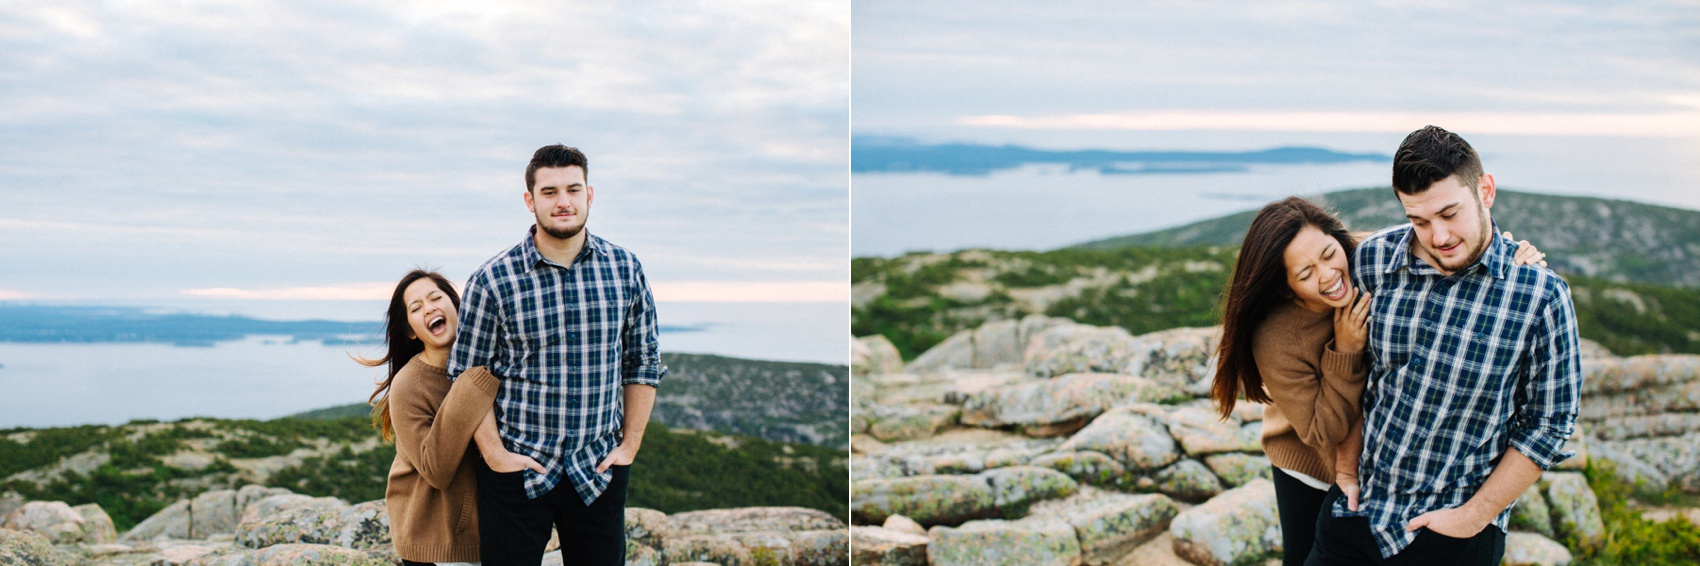 jake and jill acacdia national park engagement session cadillac mountain engagement session jordan pond engagement session maine engagement session jake and katie_0014